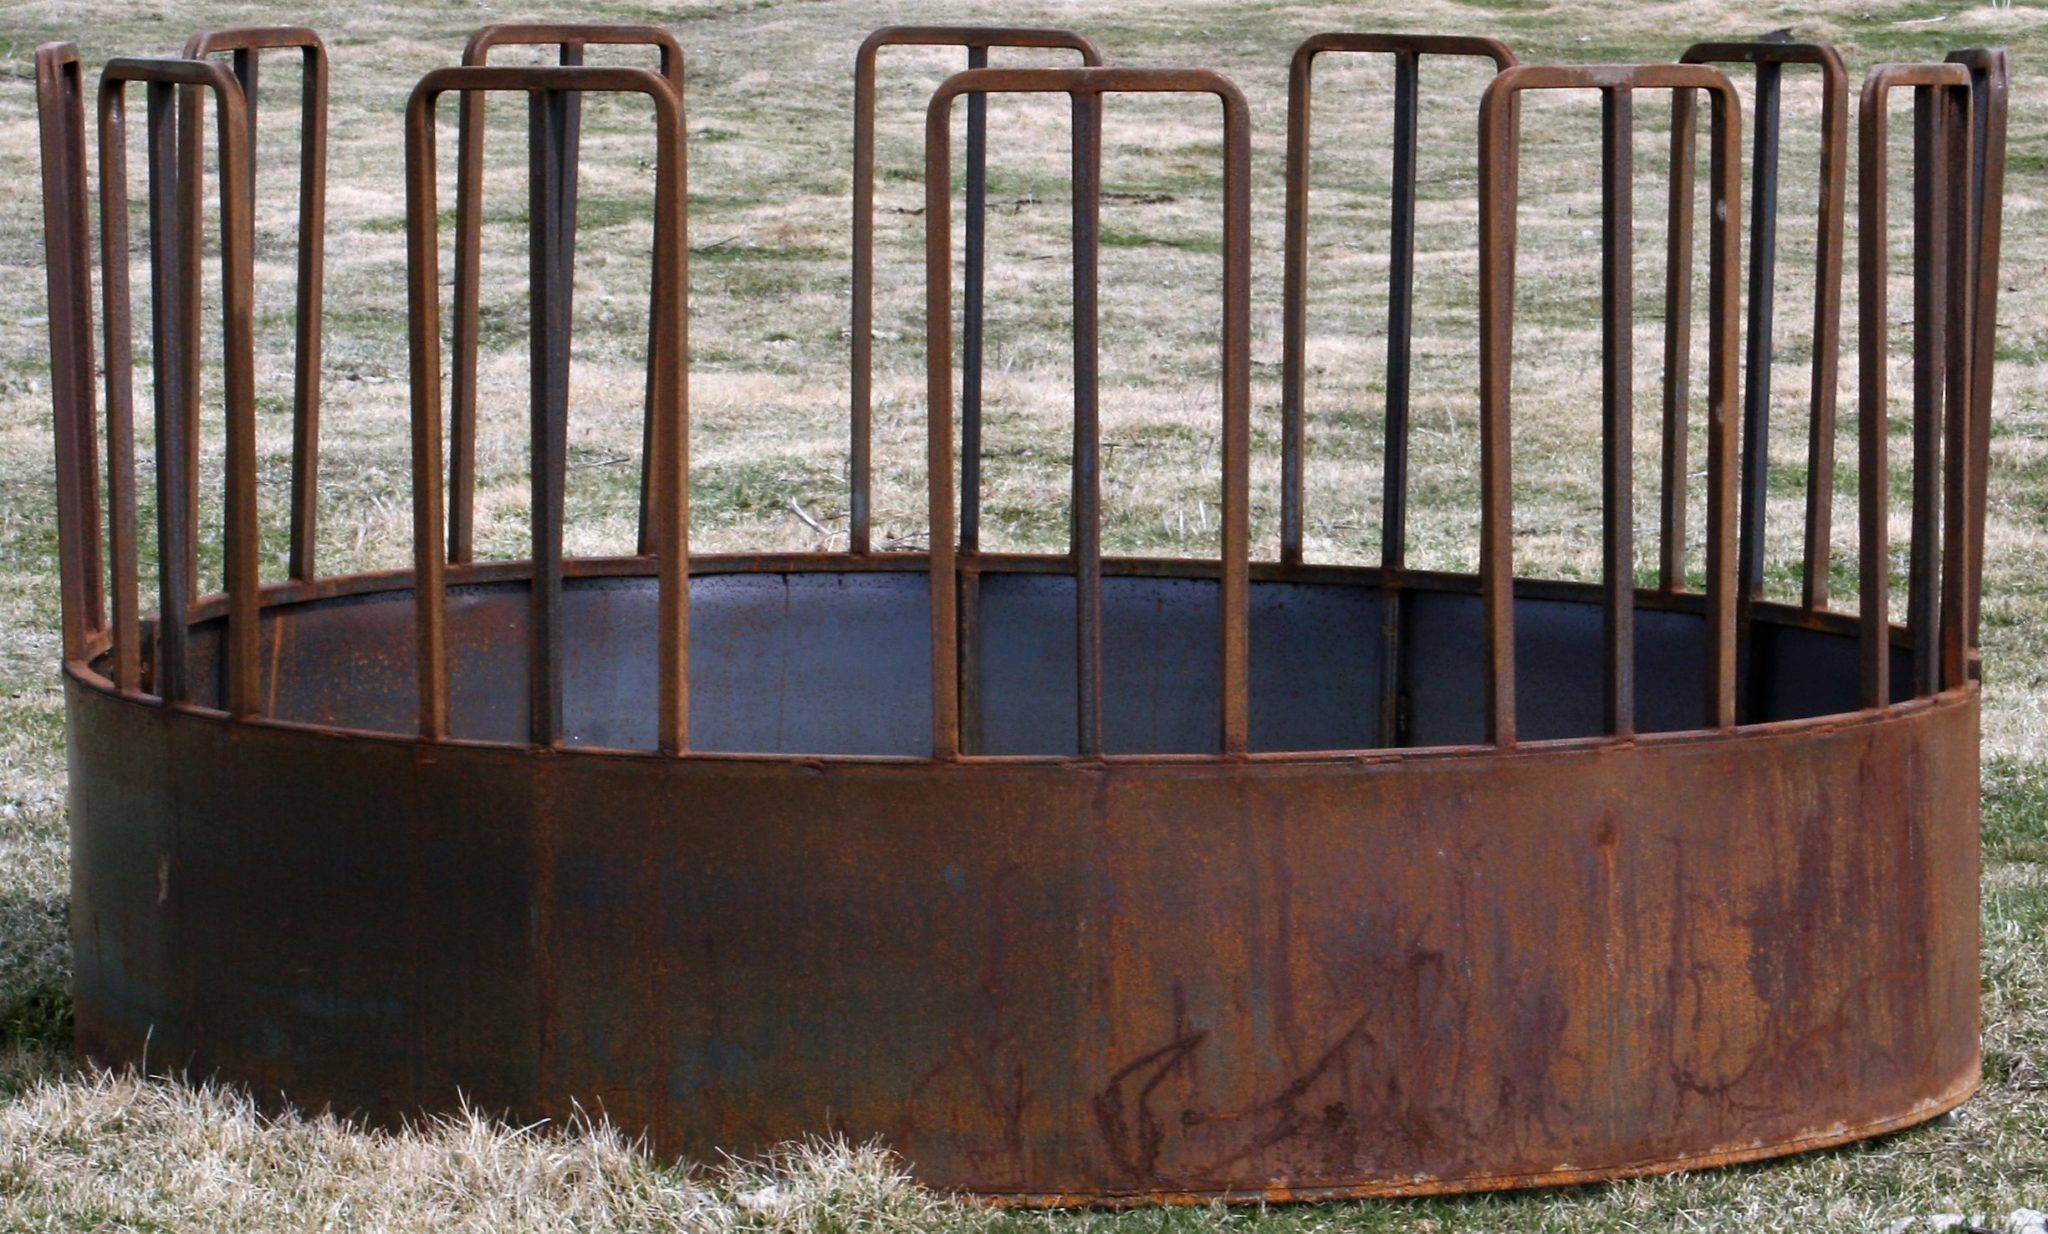 Round Bale Feeders For Cattle and Horses | Tombstone Feeder